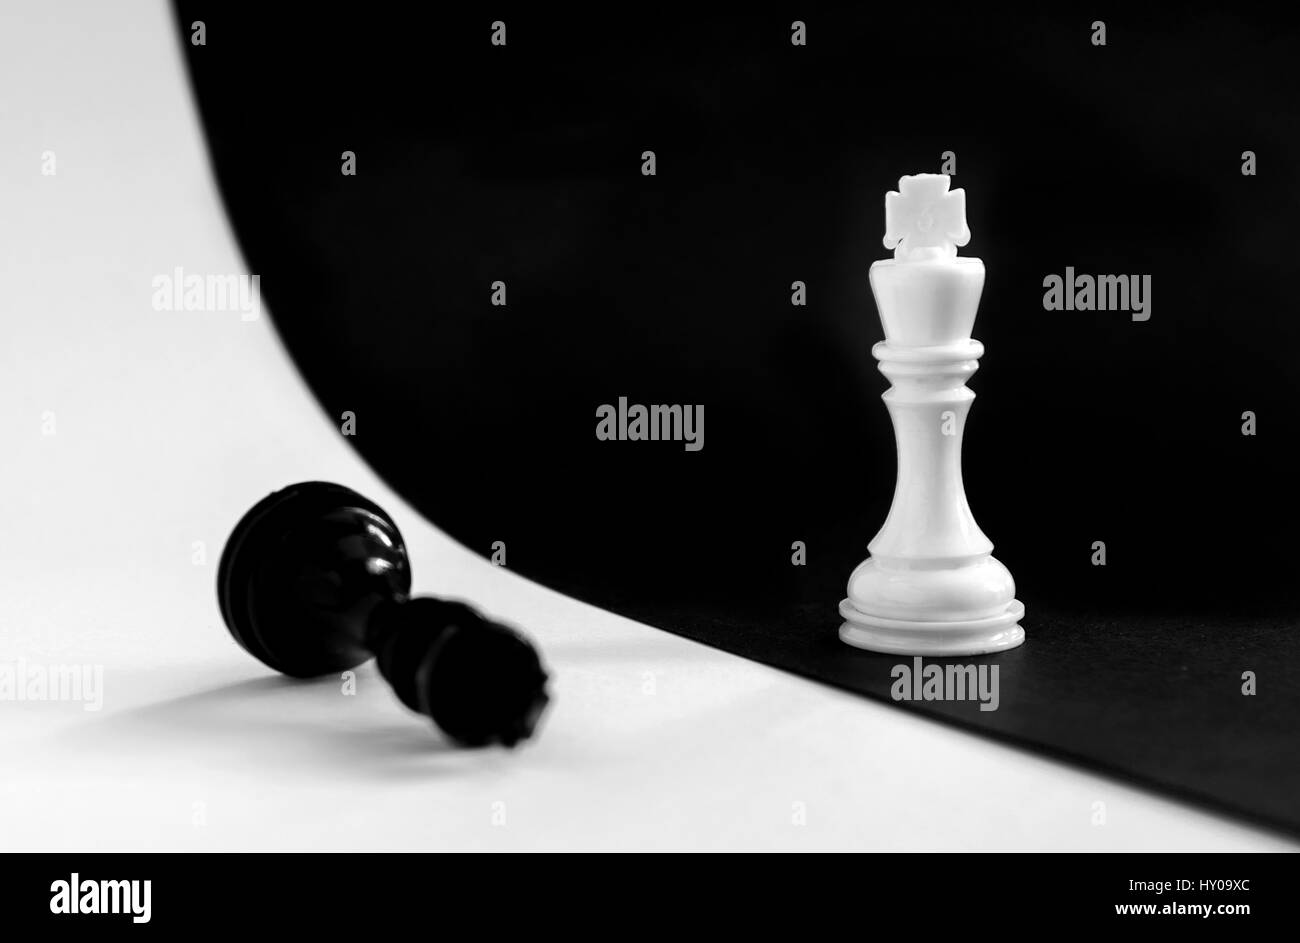 King and Queen chess game pieces on a black and white board - Stock Image